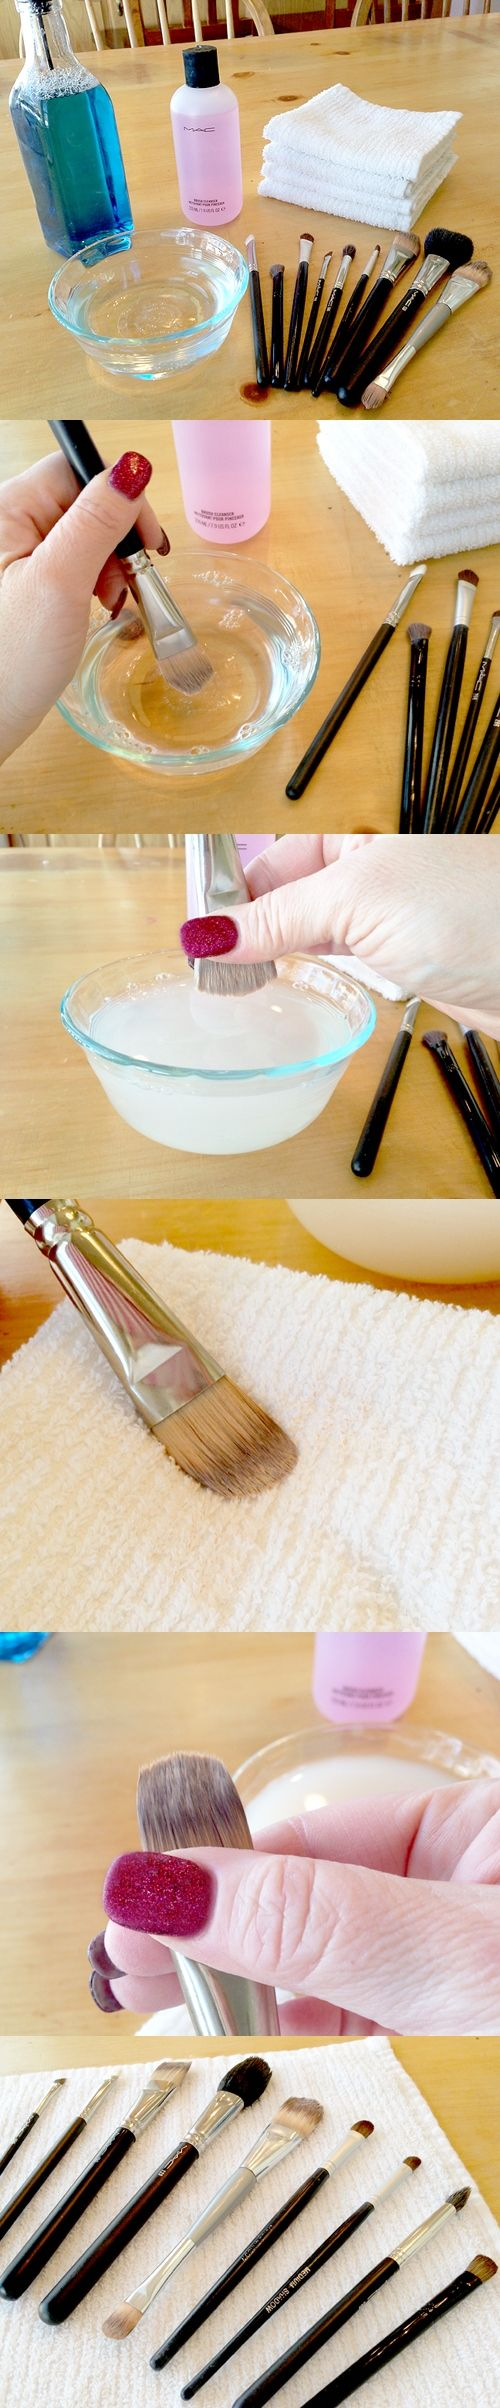 DIY How To Clean Your Makeup Brushes